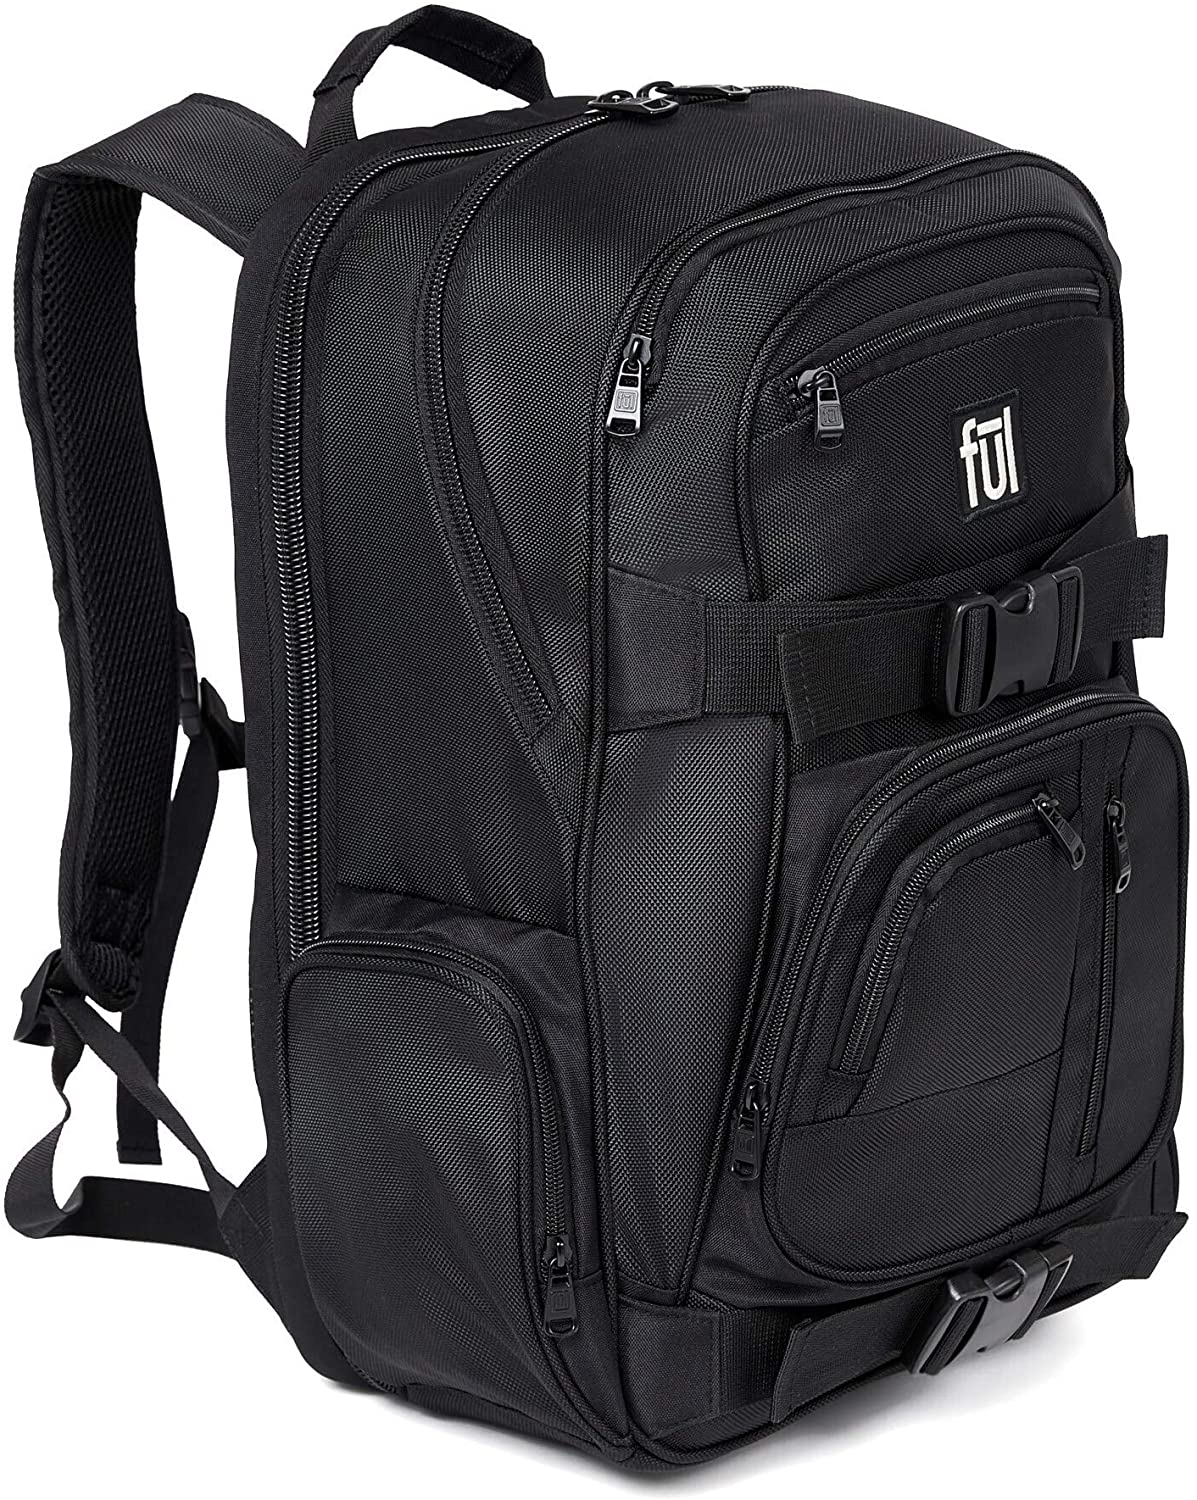 "18"" Laptop Backpack Black Solid Polyester Checkpoint Friendly Compartment Compartment Adjustable Strap Lined"